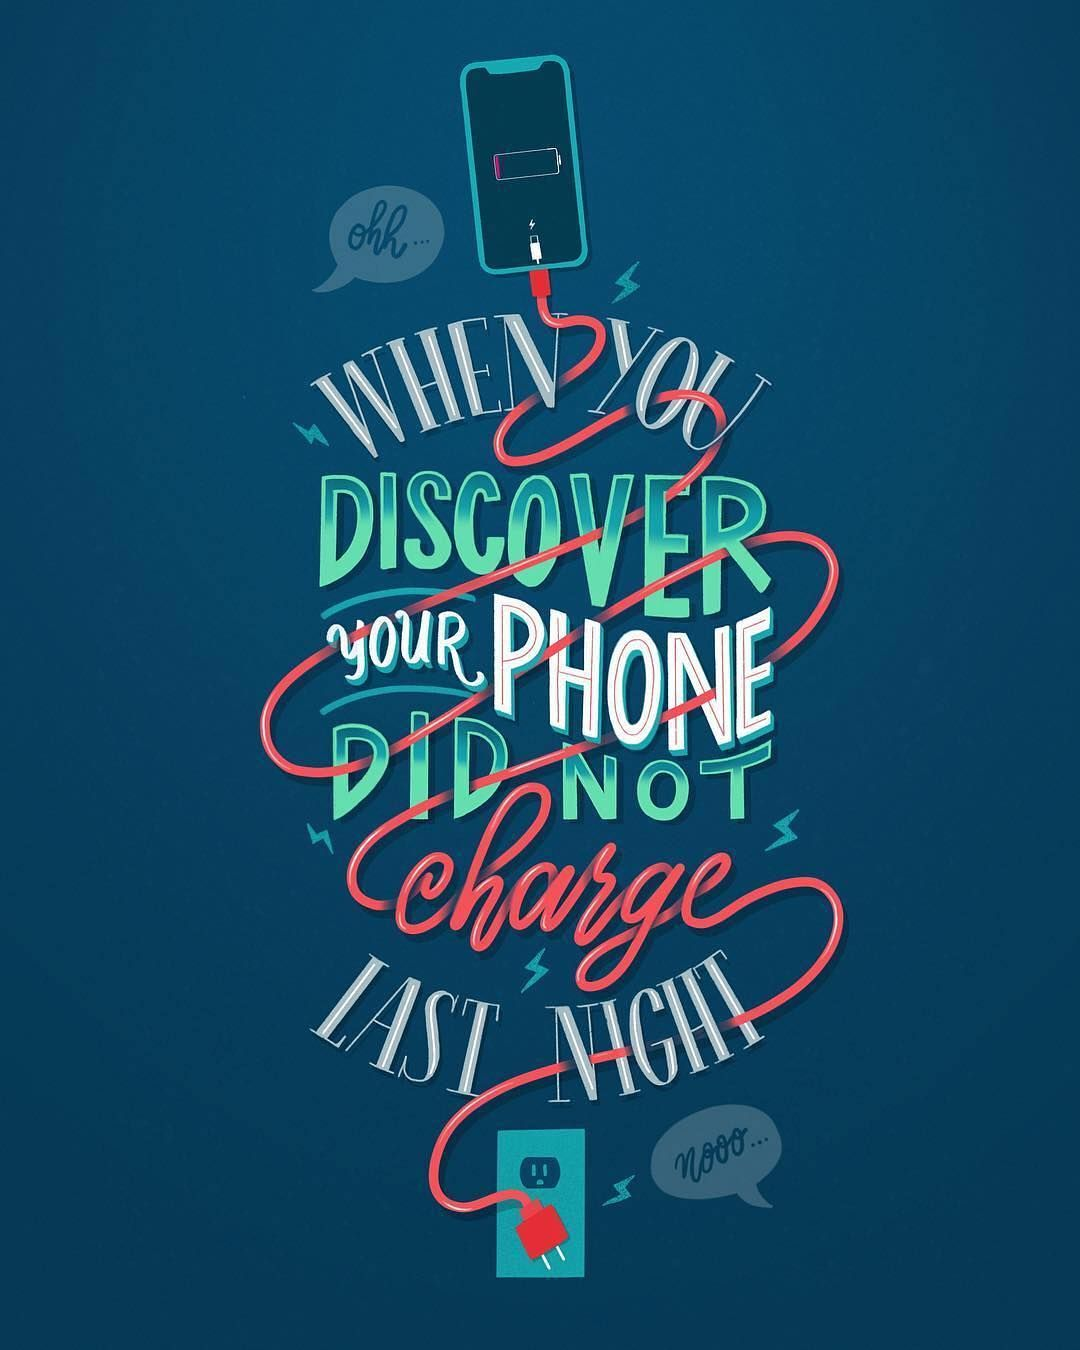 Your phone did not charge | Typography | Typography design